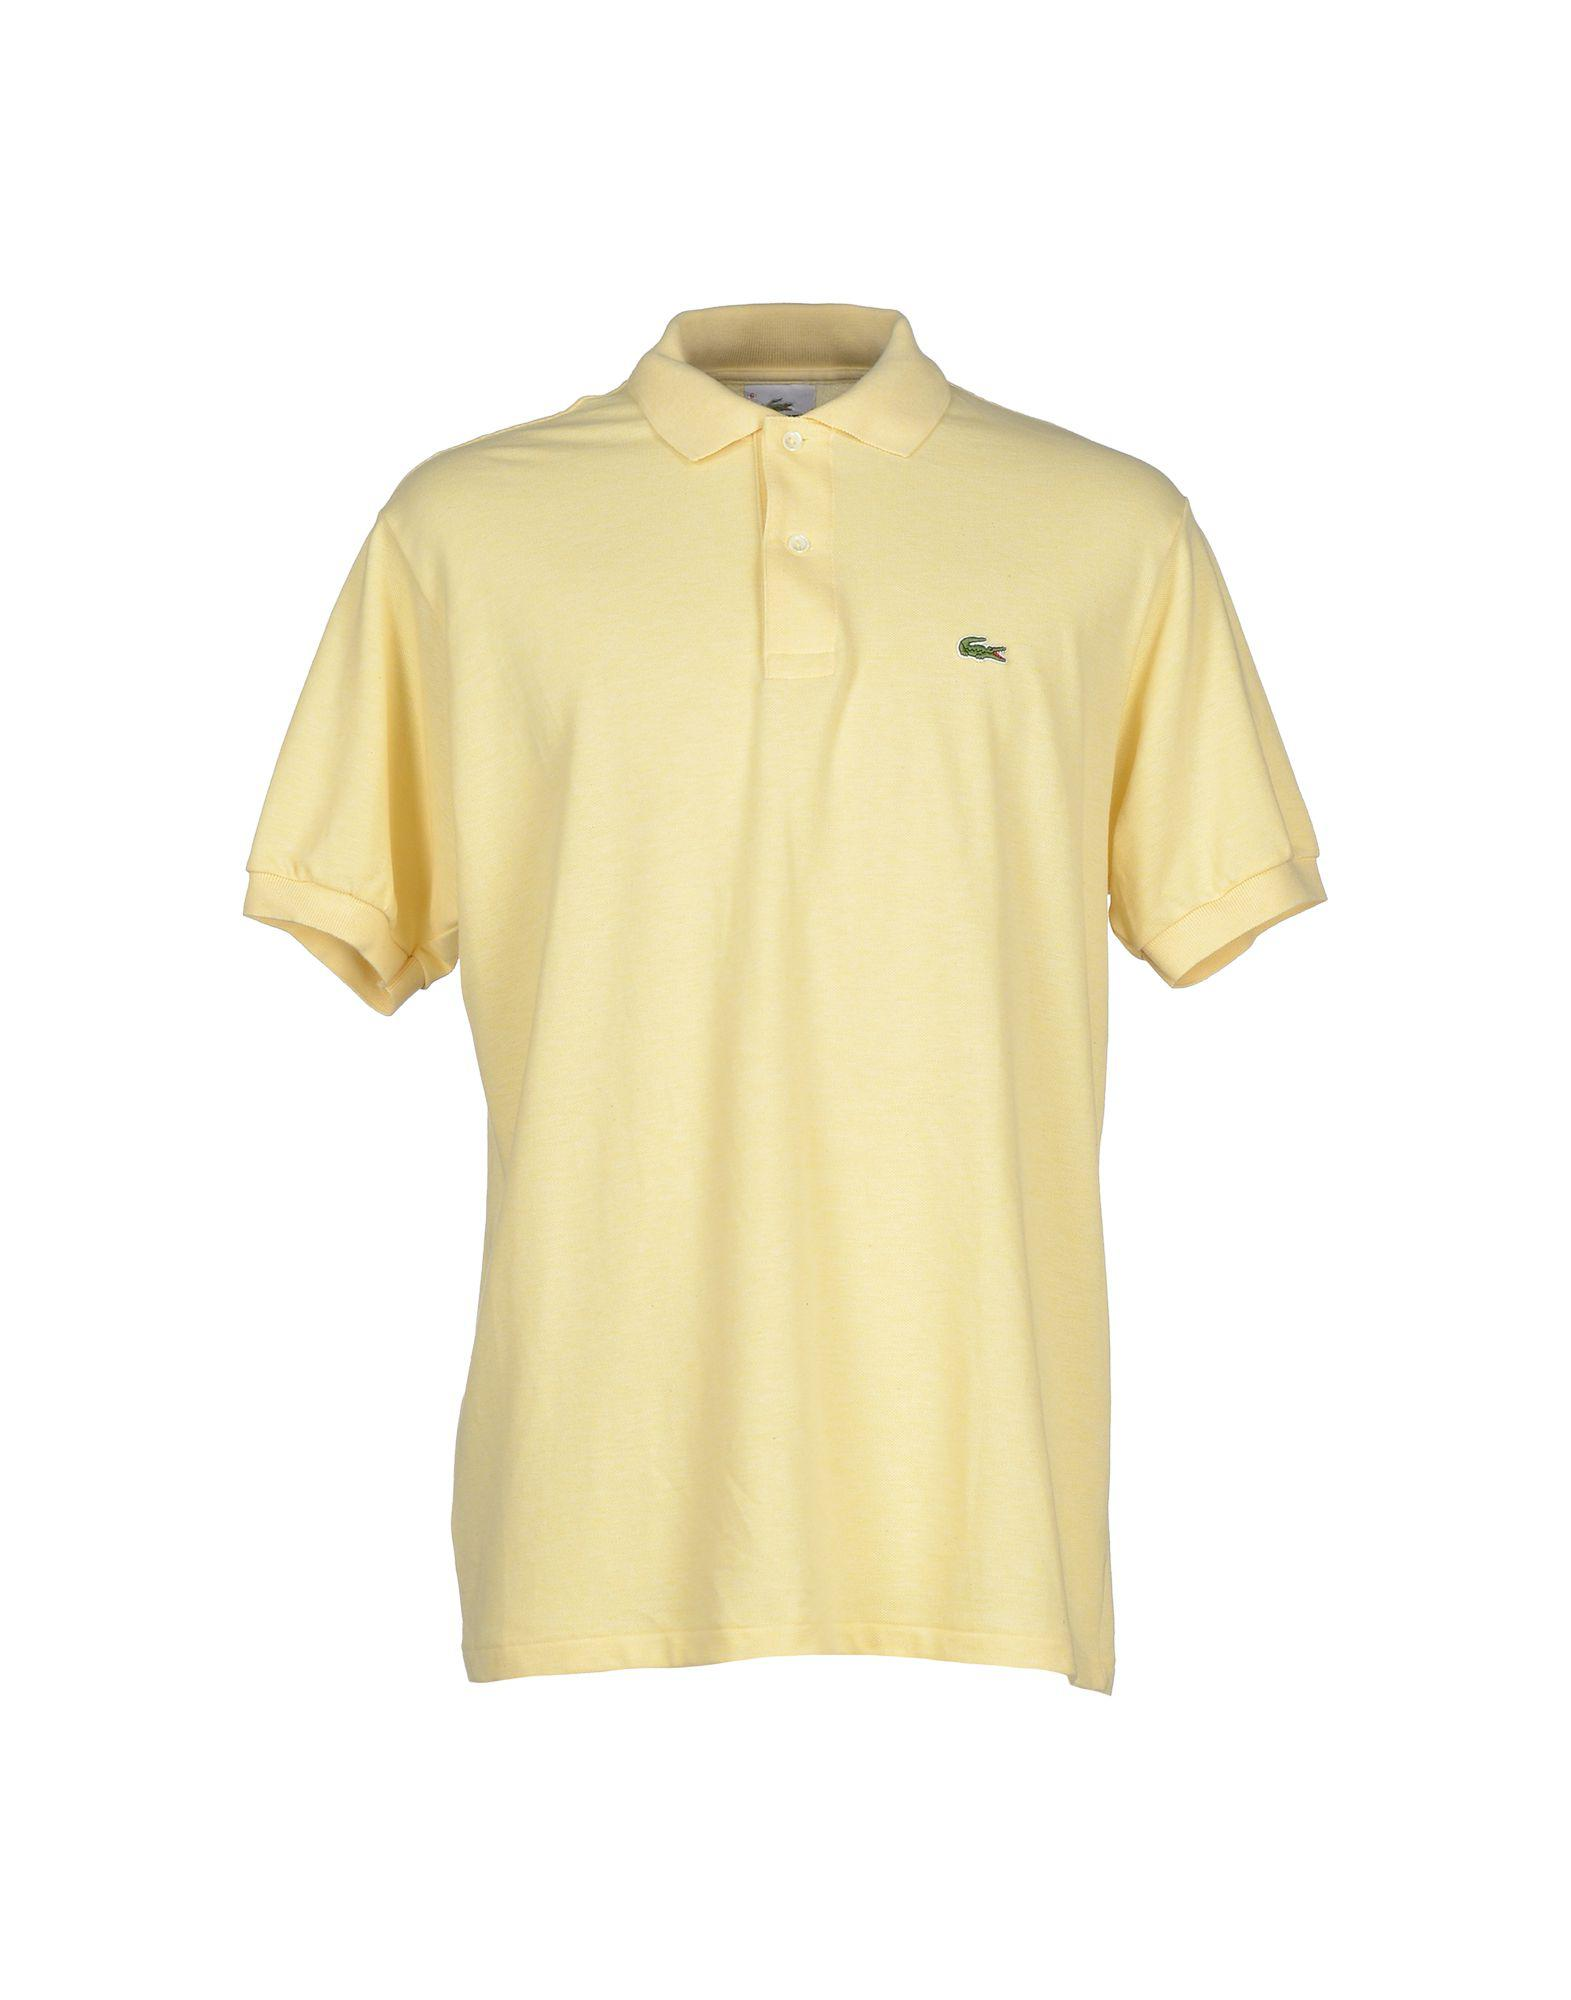 ee62166ce Lyst - Lacoste Polo Shirt in Yellow for Men